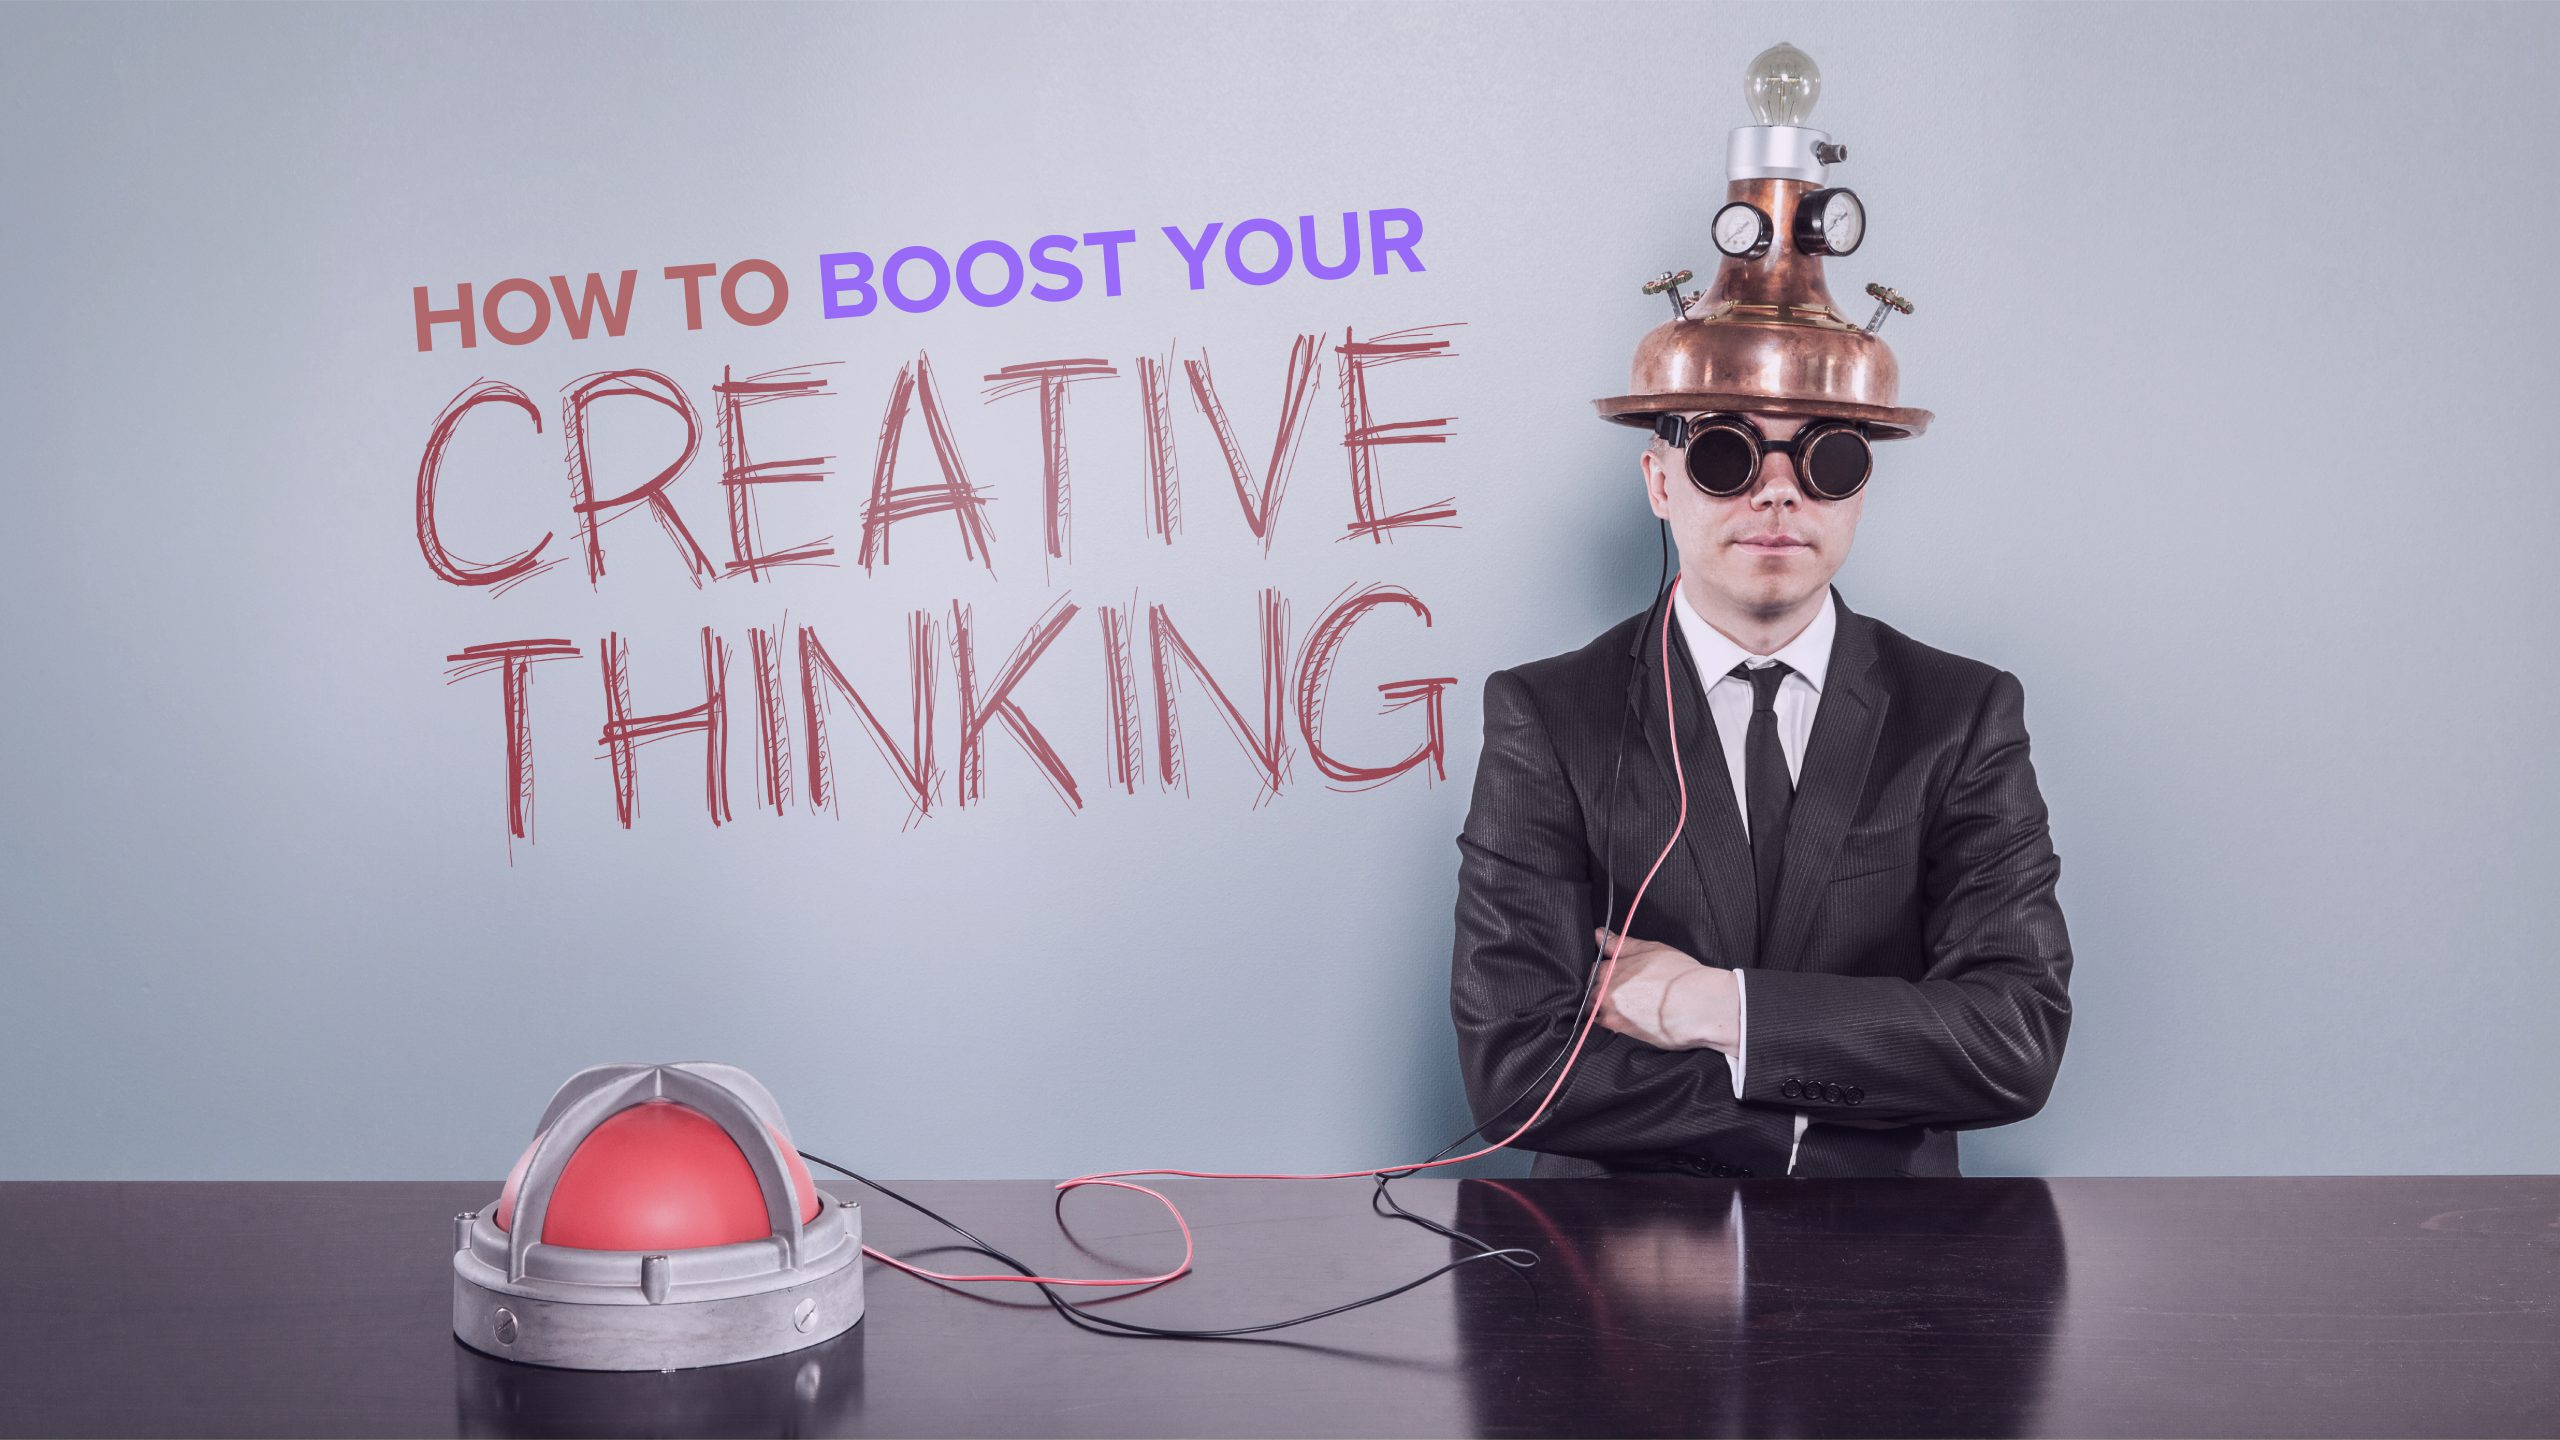 How to Boost Your Creative Thinking